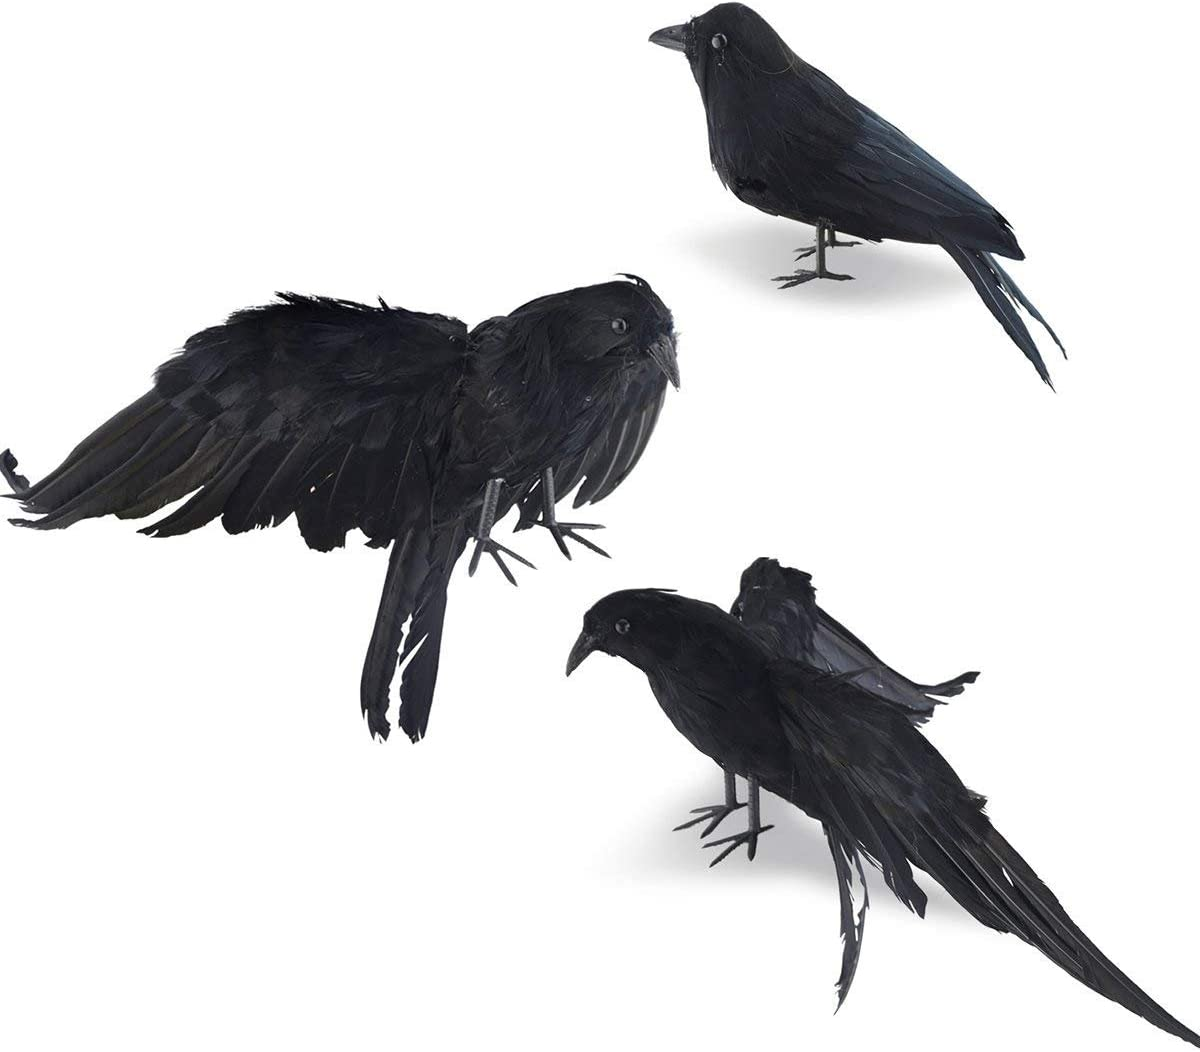 Takefuns Halloween Realistic Handmade Crow Prop 3 Pack Black Feathered Crow Fly and Stand Crows Ravens for Outdoors and Indoors Crow Decoration